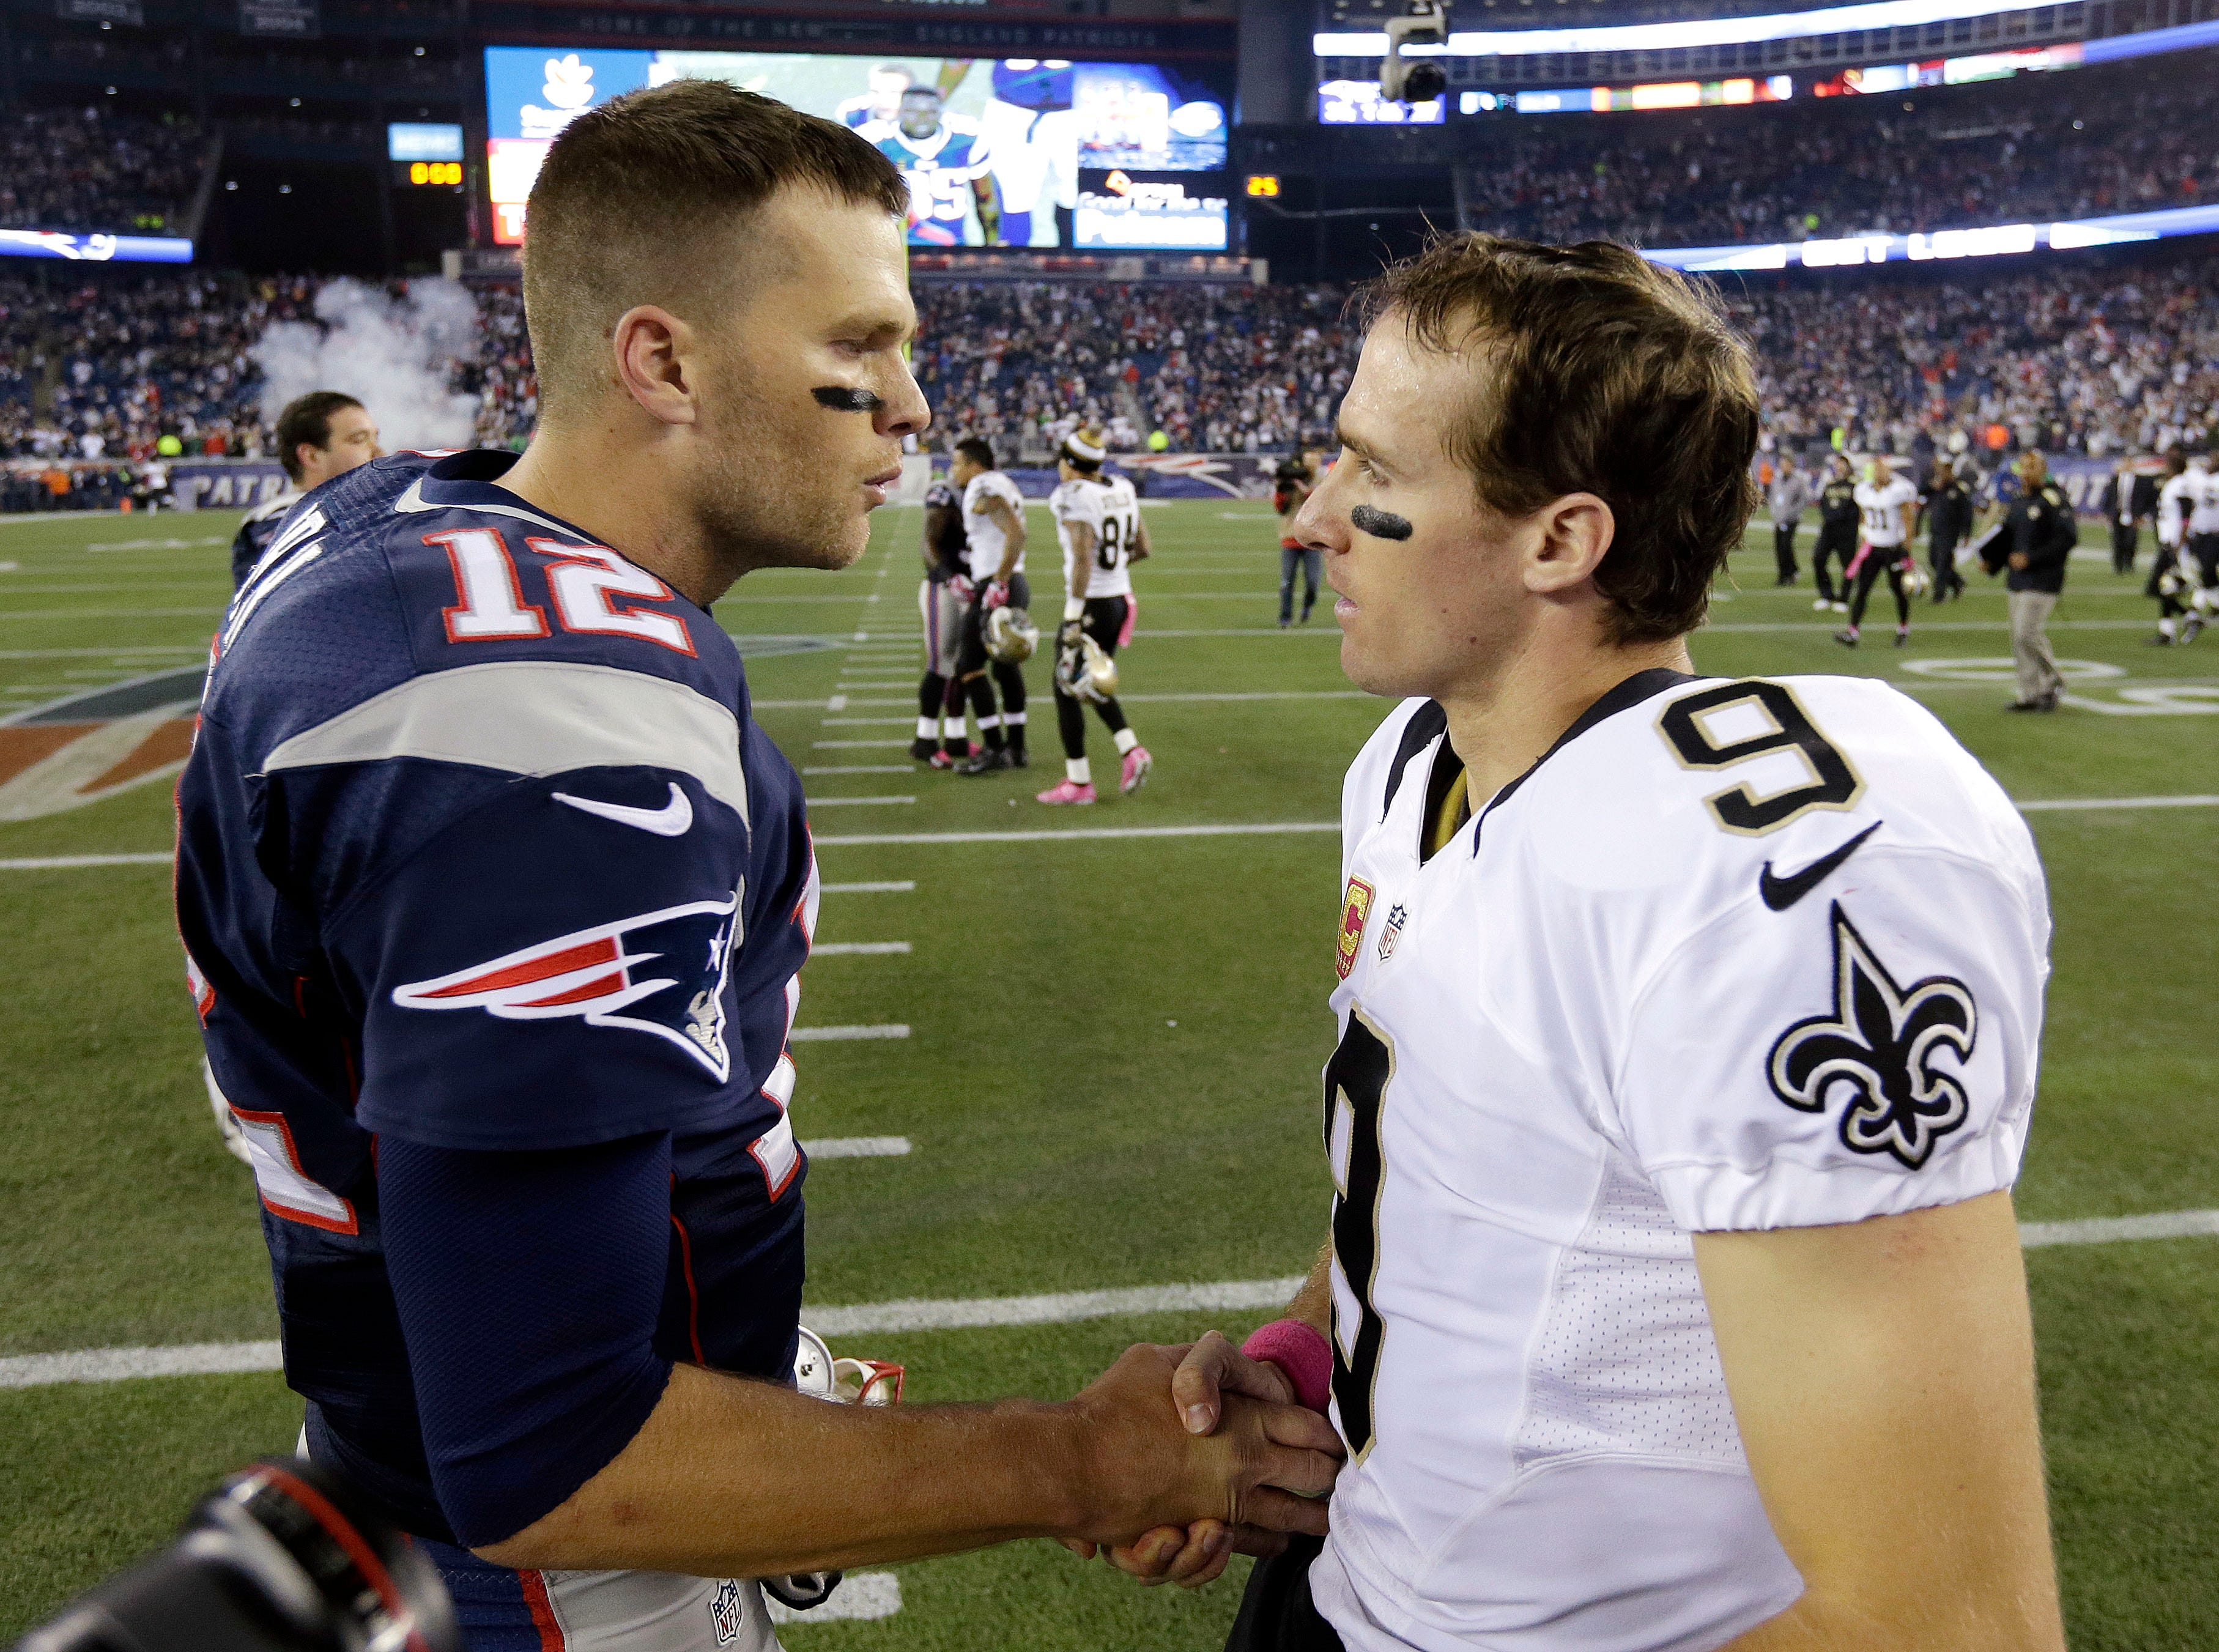 2020 NFL record projections: Will Tom Brady or Drew Brees lead Super Bowl push?